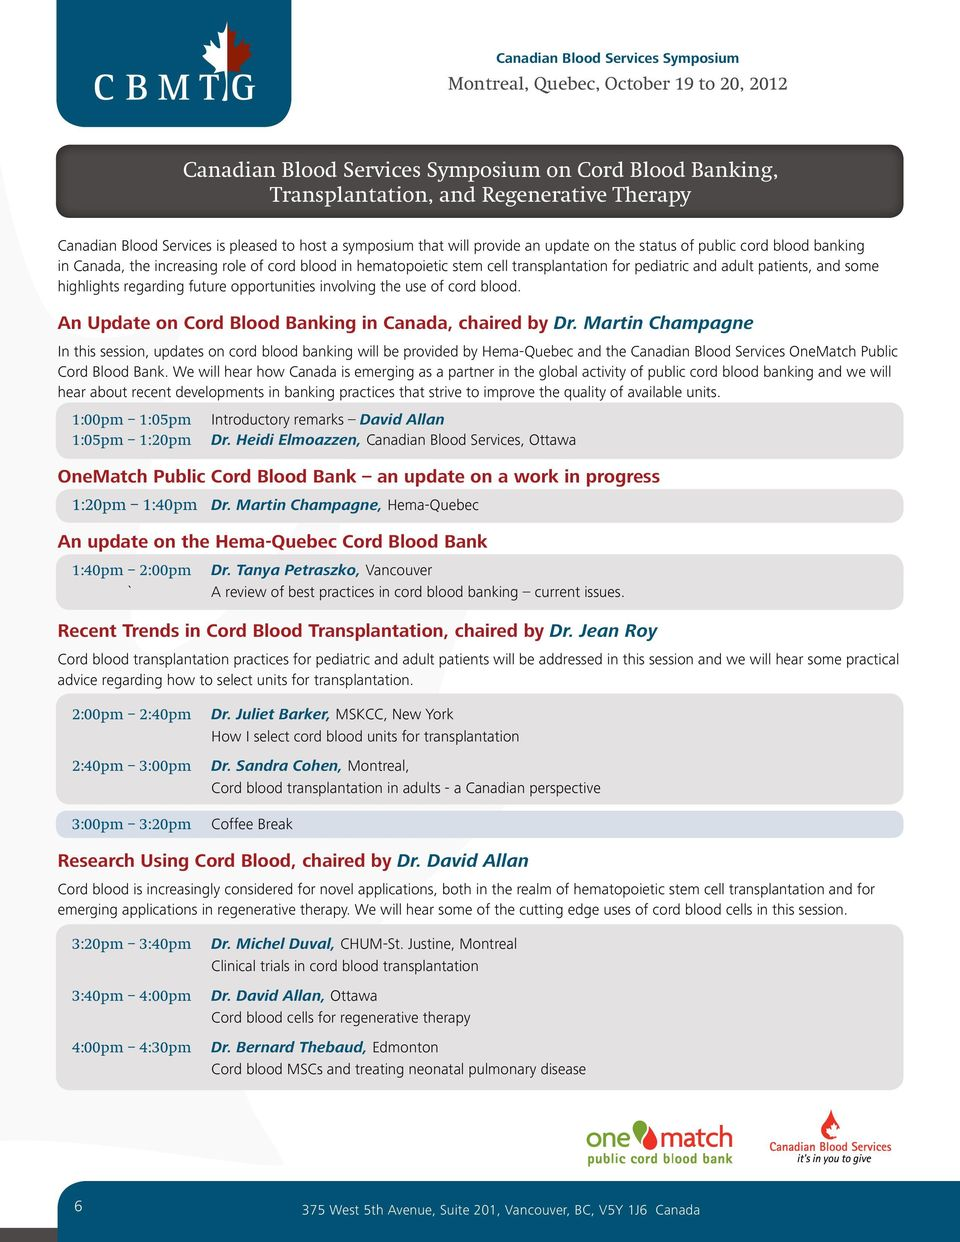 pediatric and adult patients, and some highlights regarding future opportunities involving the use of cord blood. An Update on Cord Blood Banking in Canada, chaired by Dr.